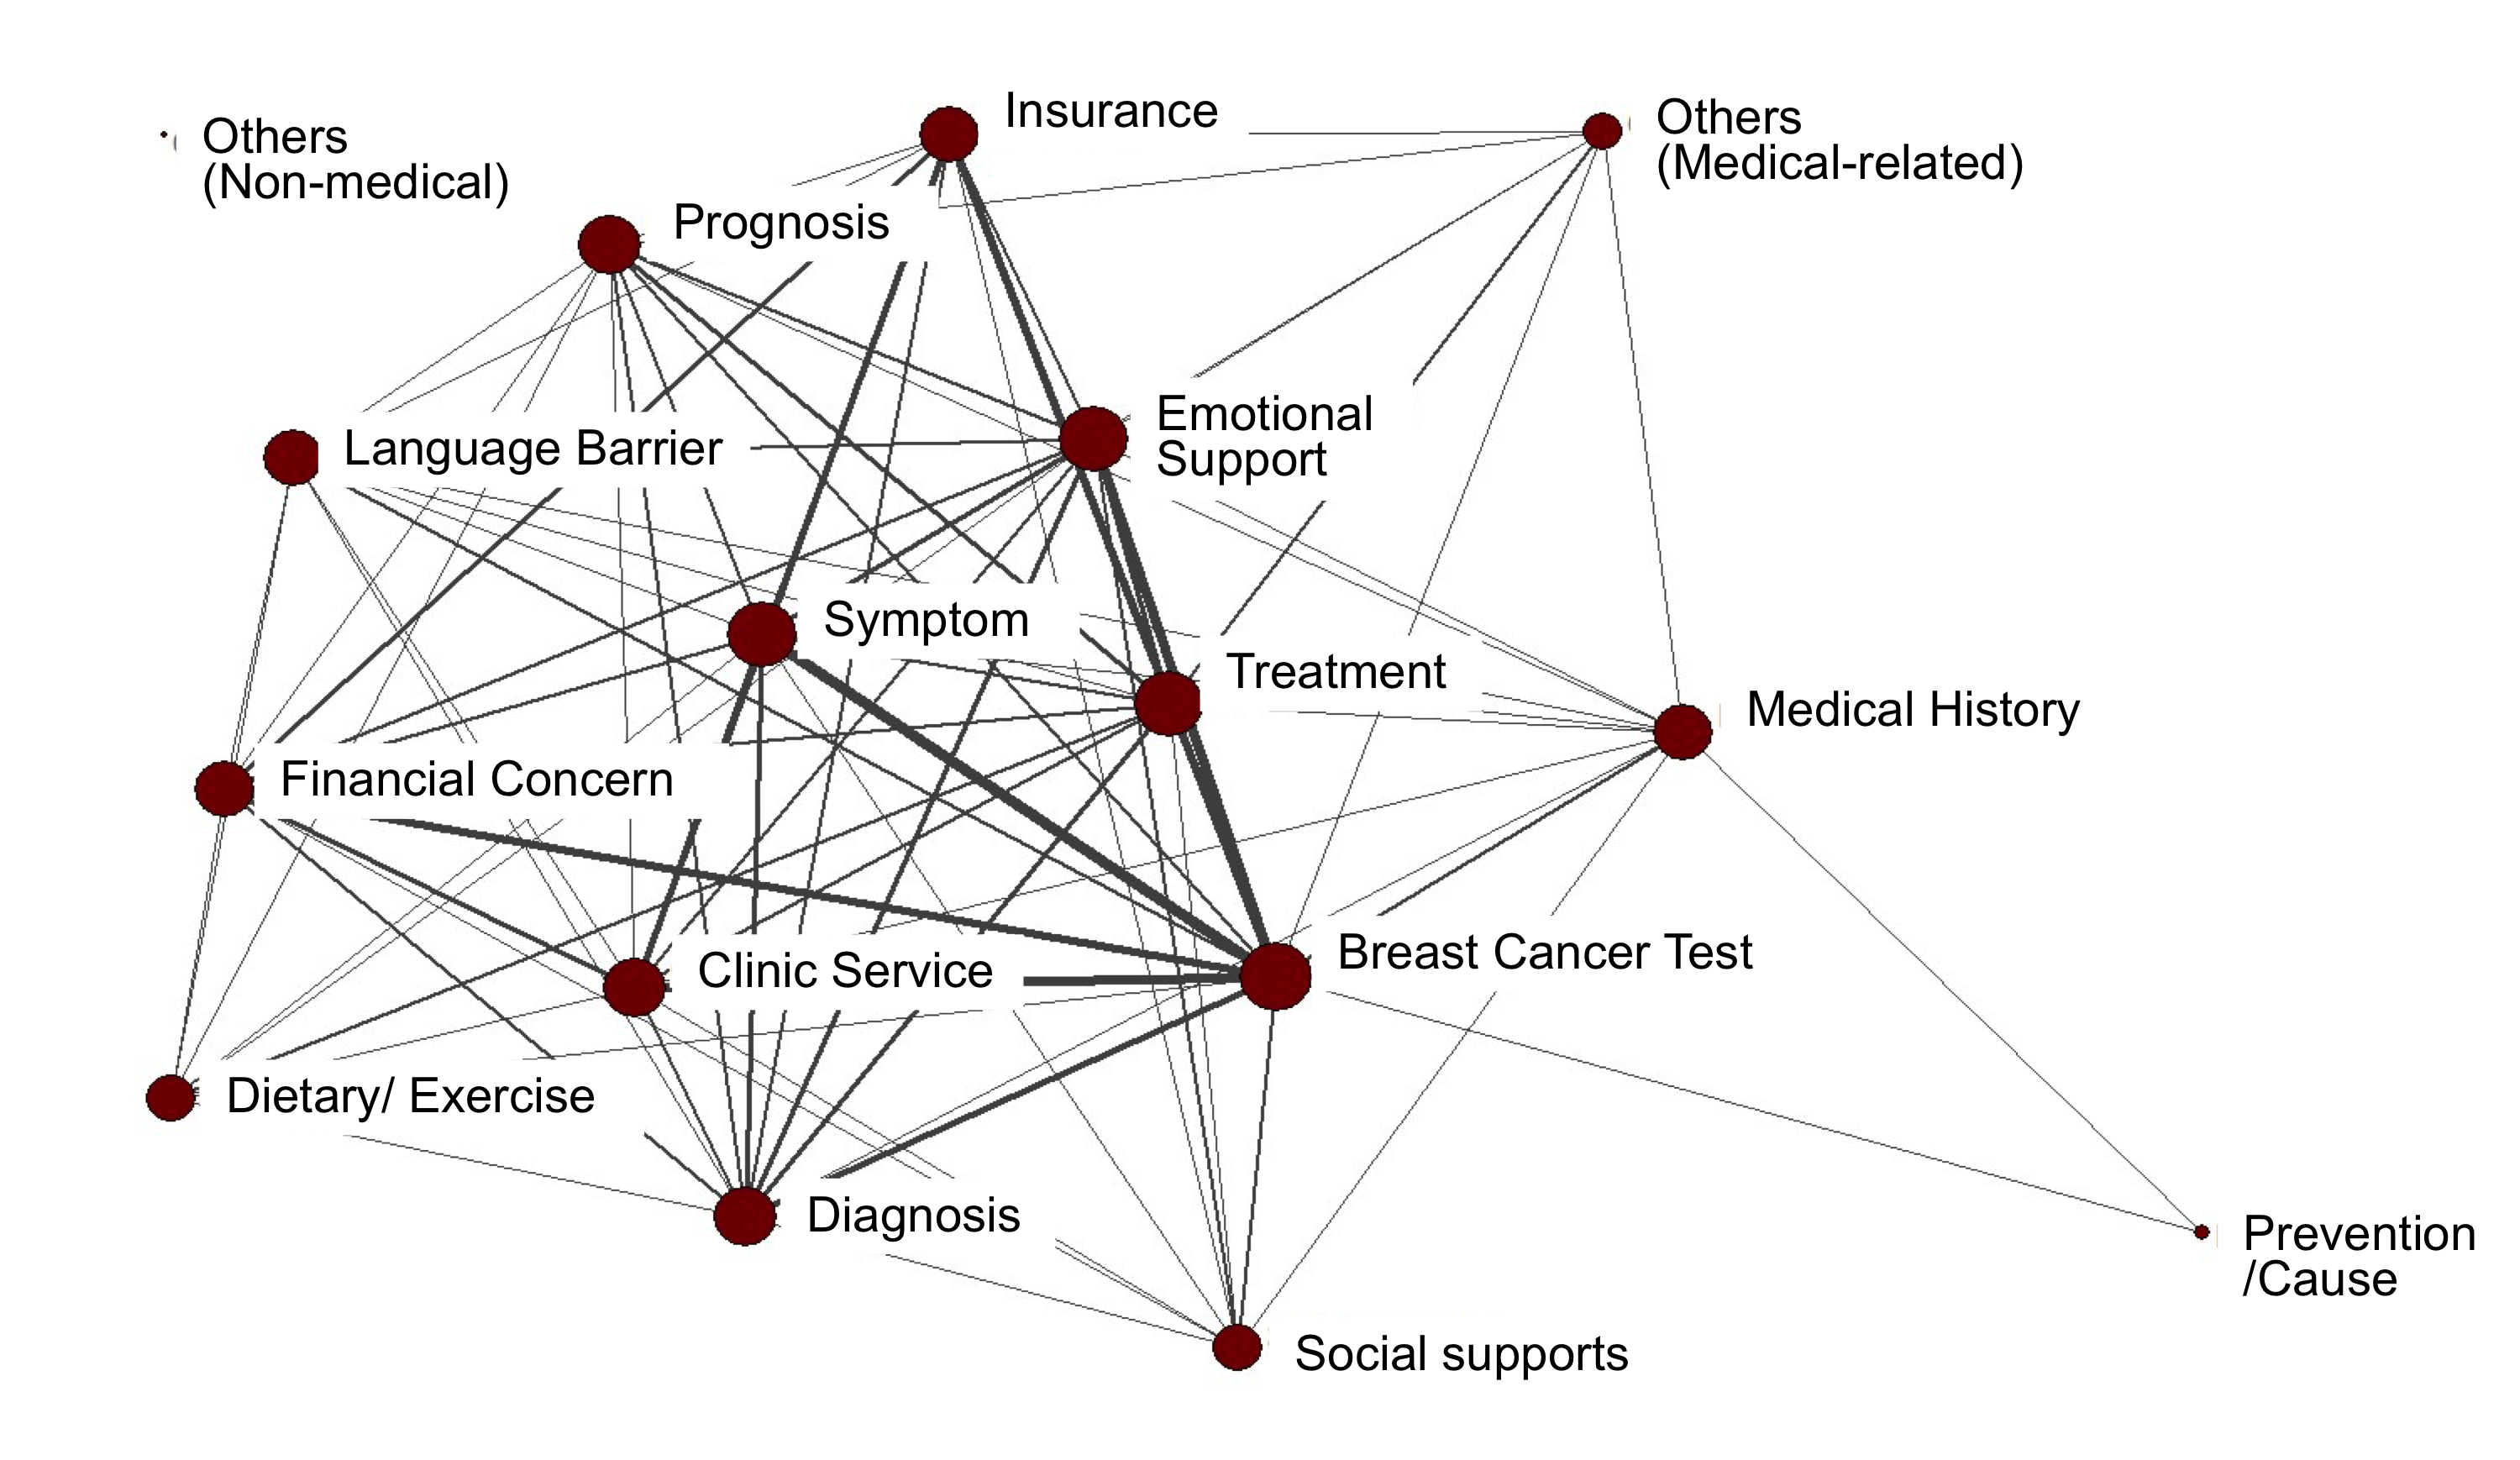 Topical network of breast cancer information in a Korean American